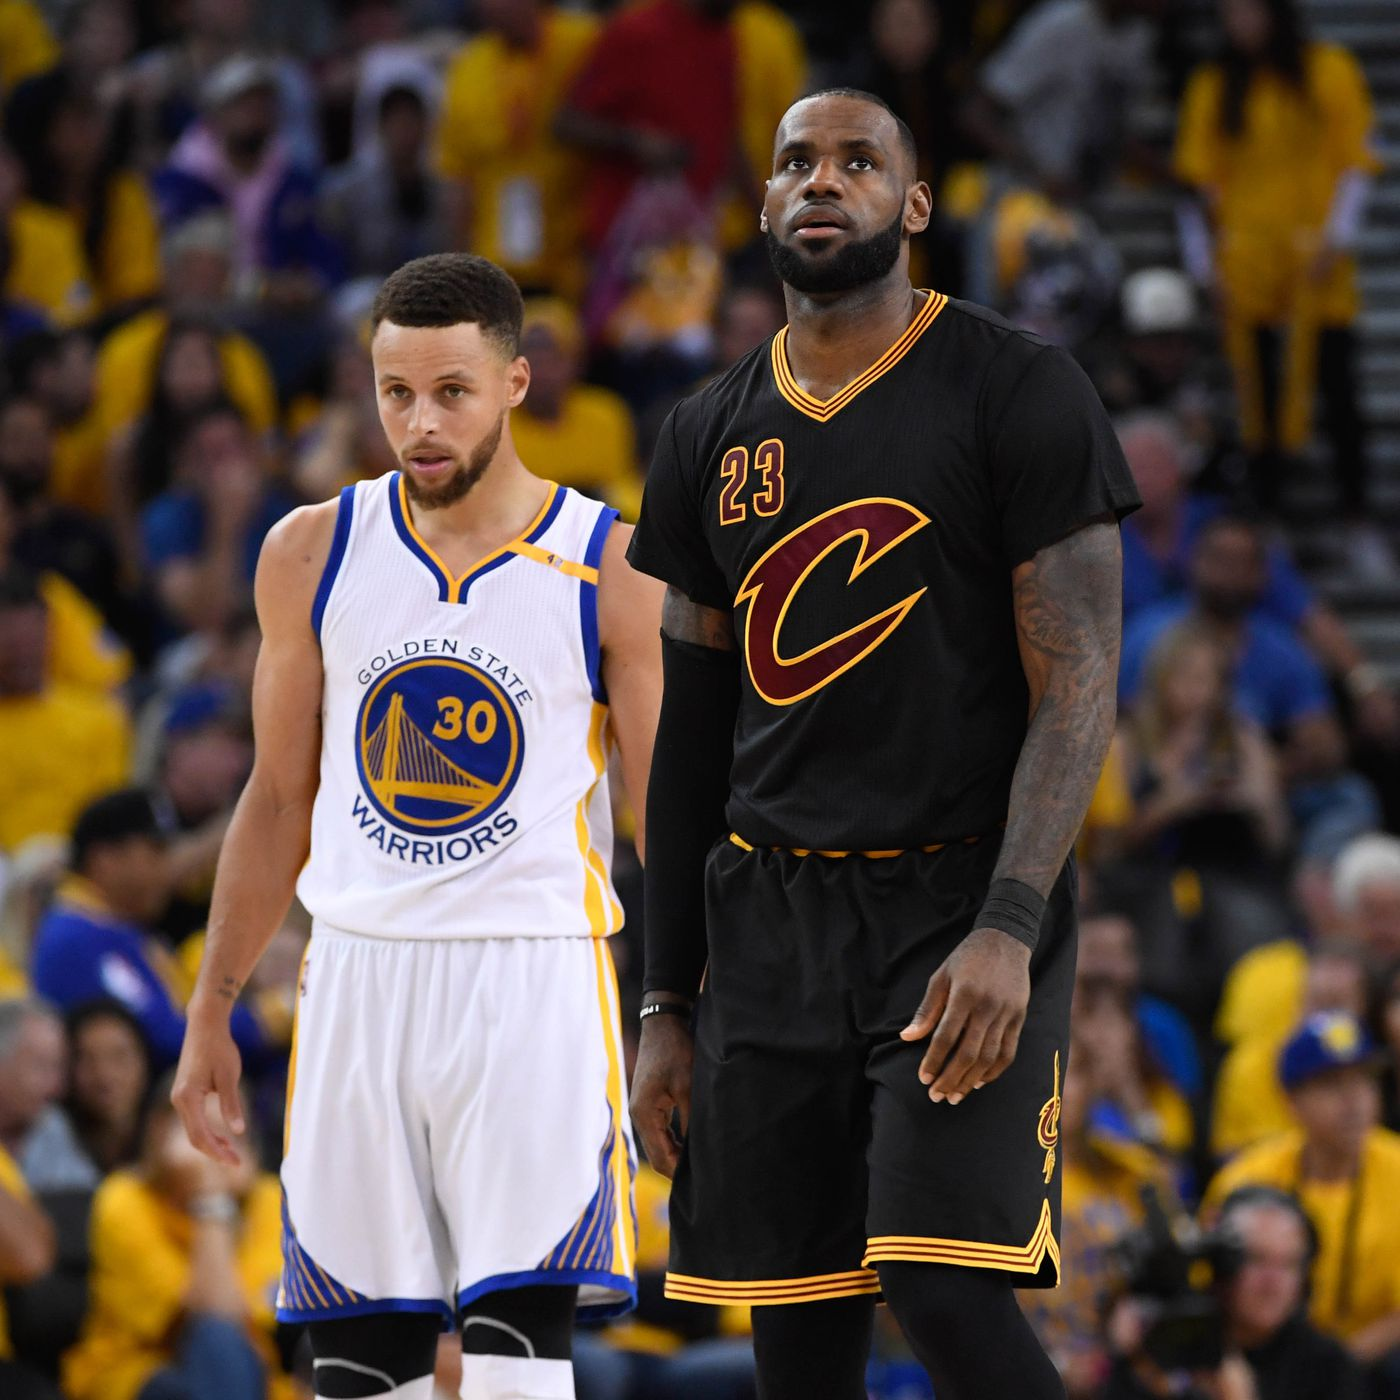 Nba All Star Game Rosters 2018 The Captains Are Lebron James Steph Curry Sbnation Com